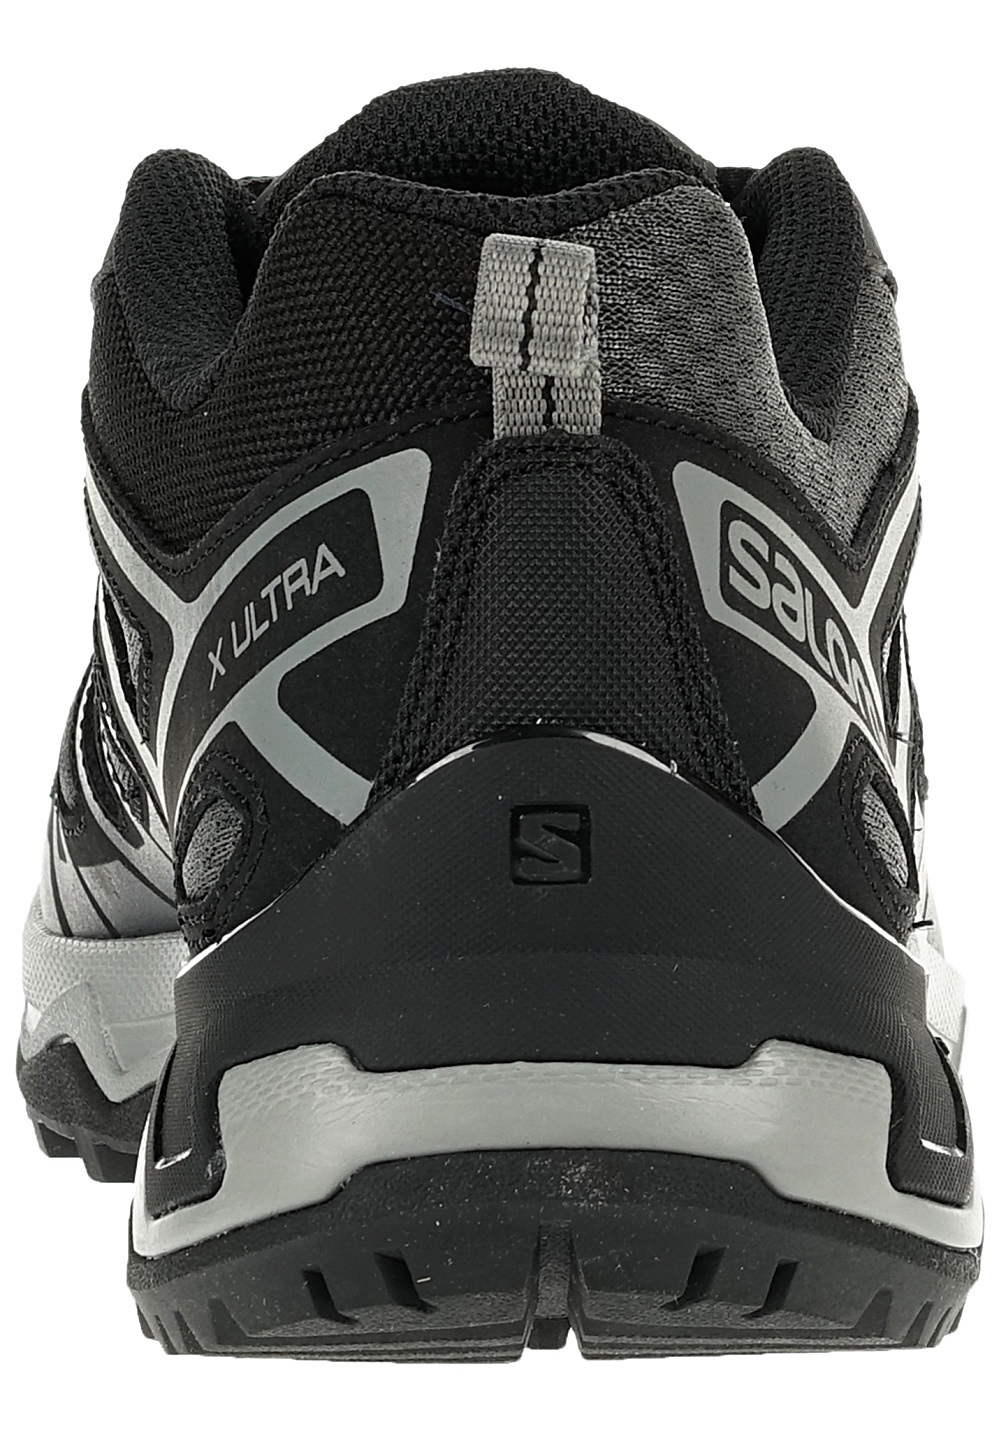 7b30e883 Next. -20%. This product is currently out of stock. Salomon. X Ultra 3 Prime  - Trekking ...